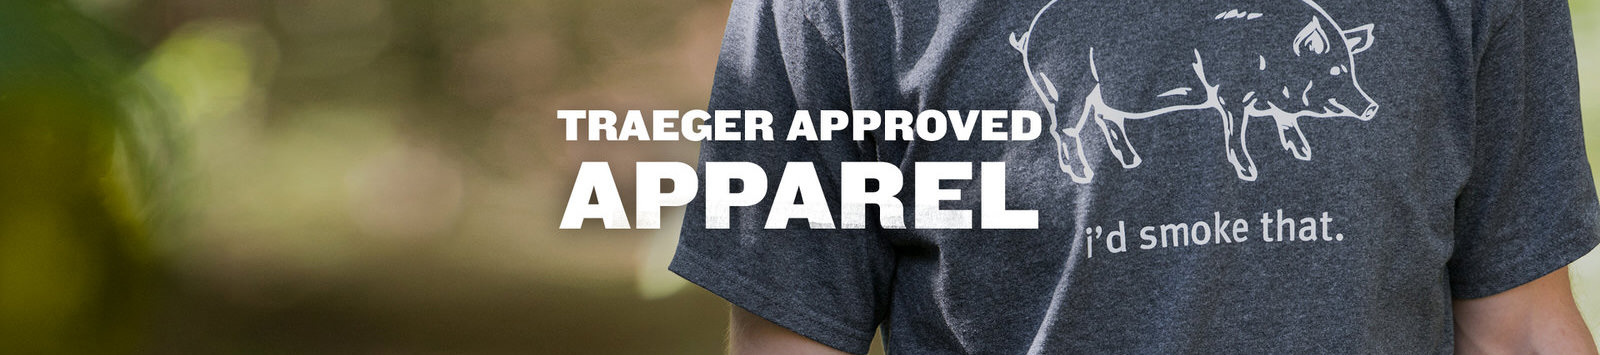 Traeger Approved Apparel